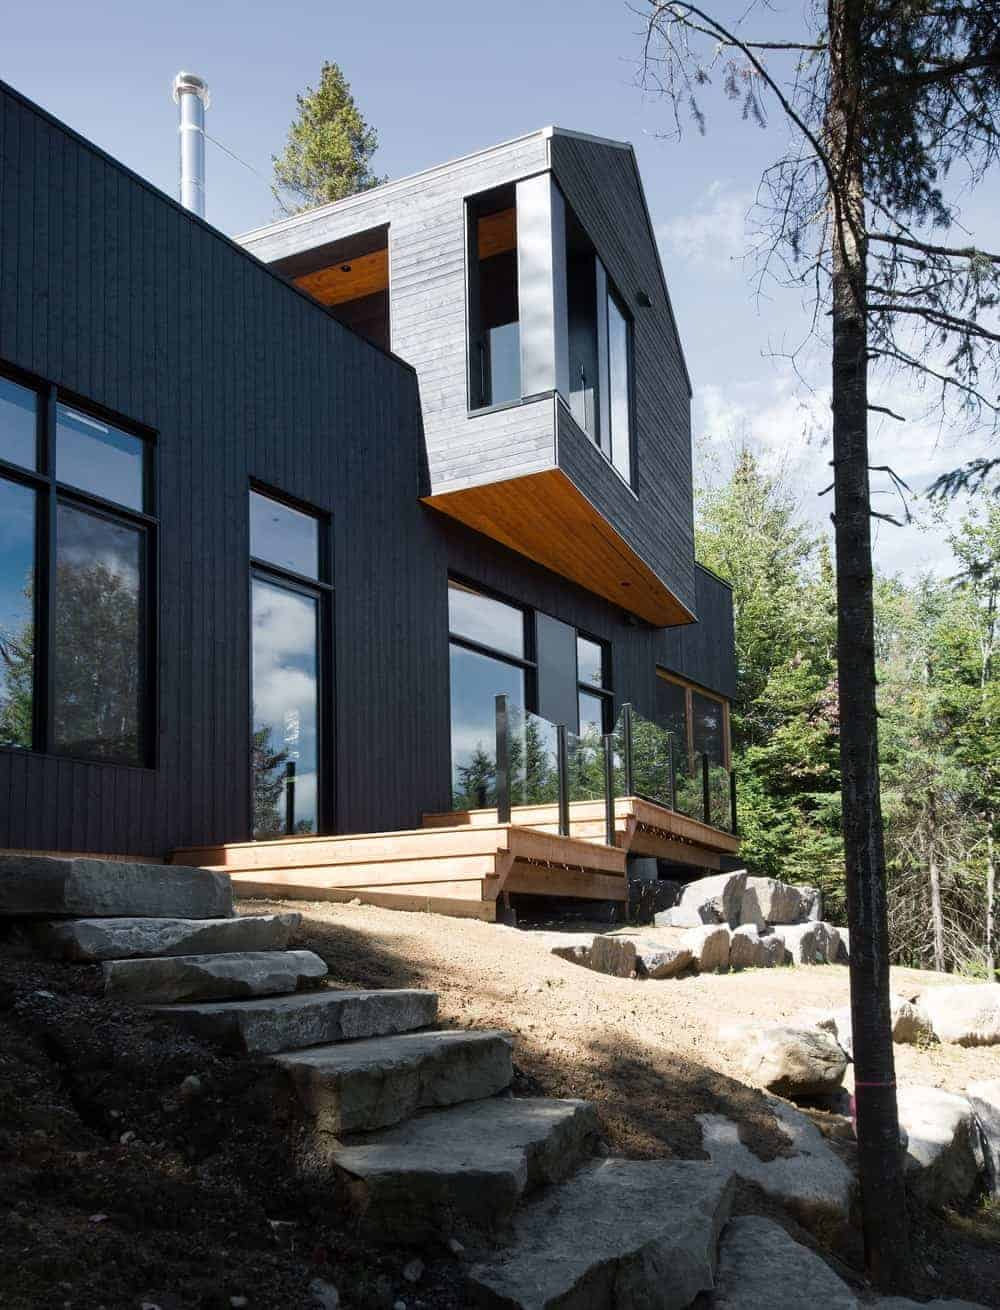 A modern home featuring a wooden exterior painted in black.